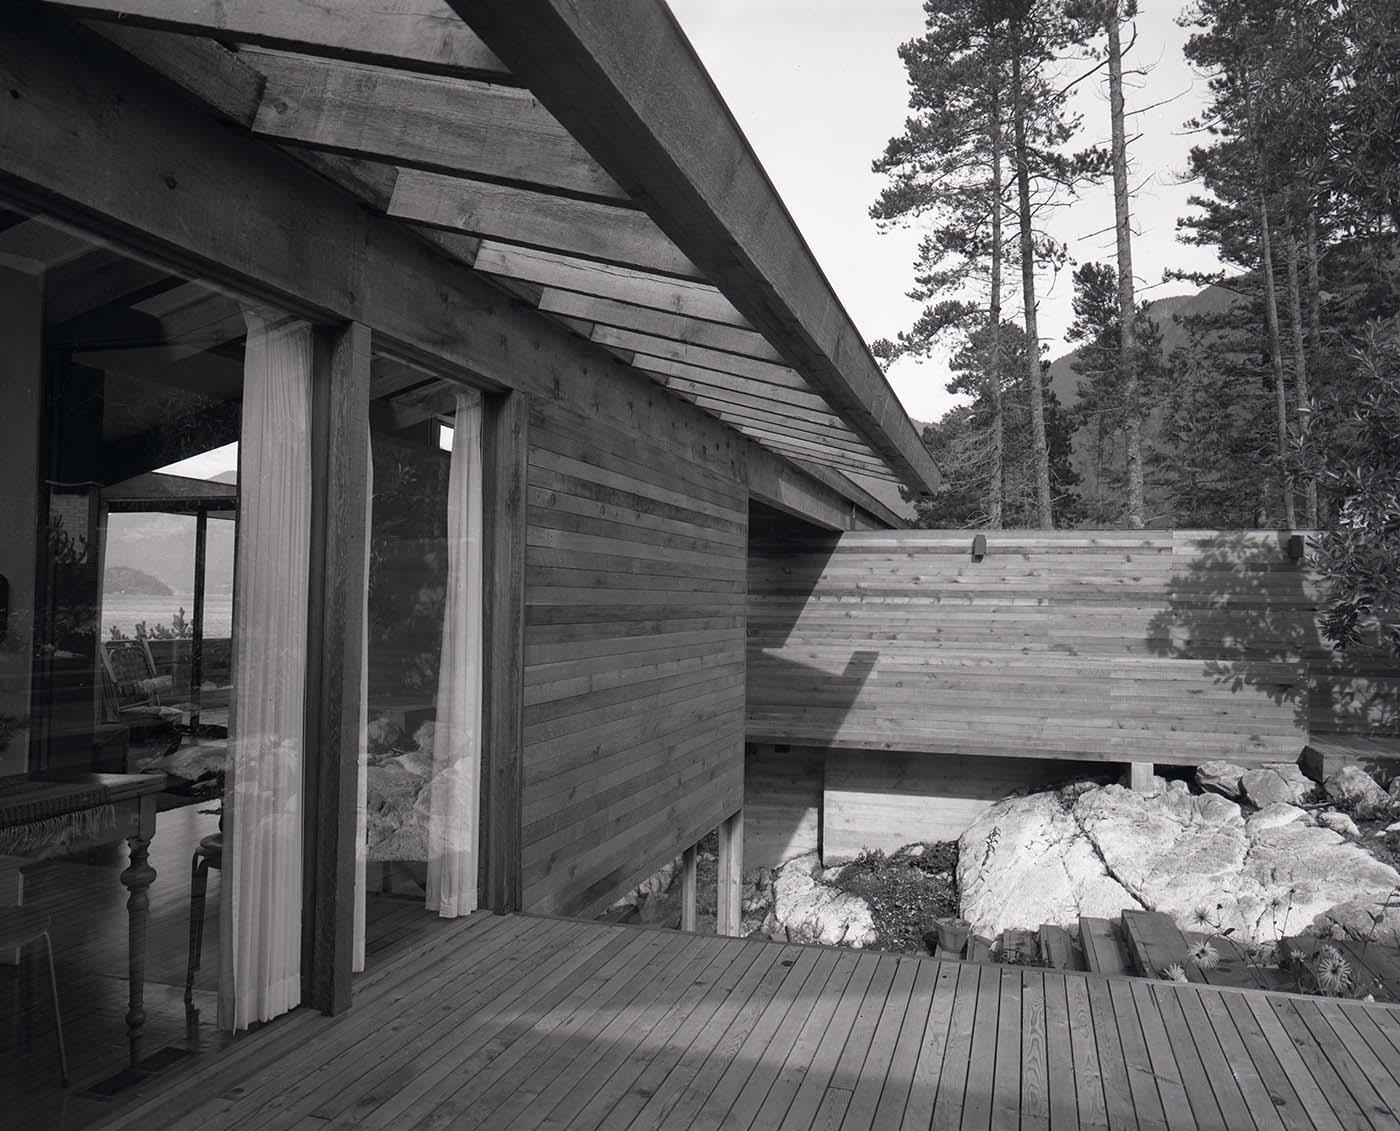 Anton Residence exterior (Erickson and Massey), Photo by Fred Schiffer, 1967.